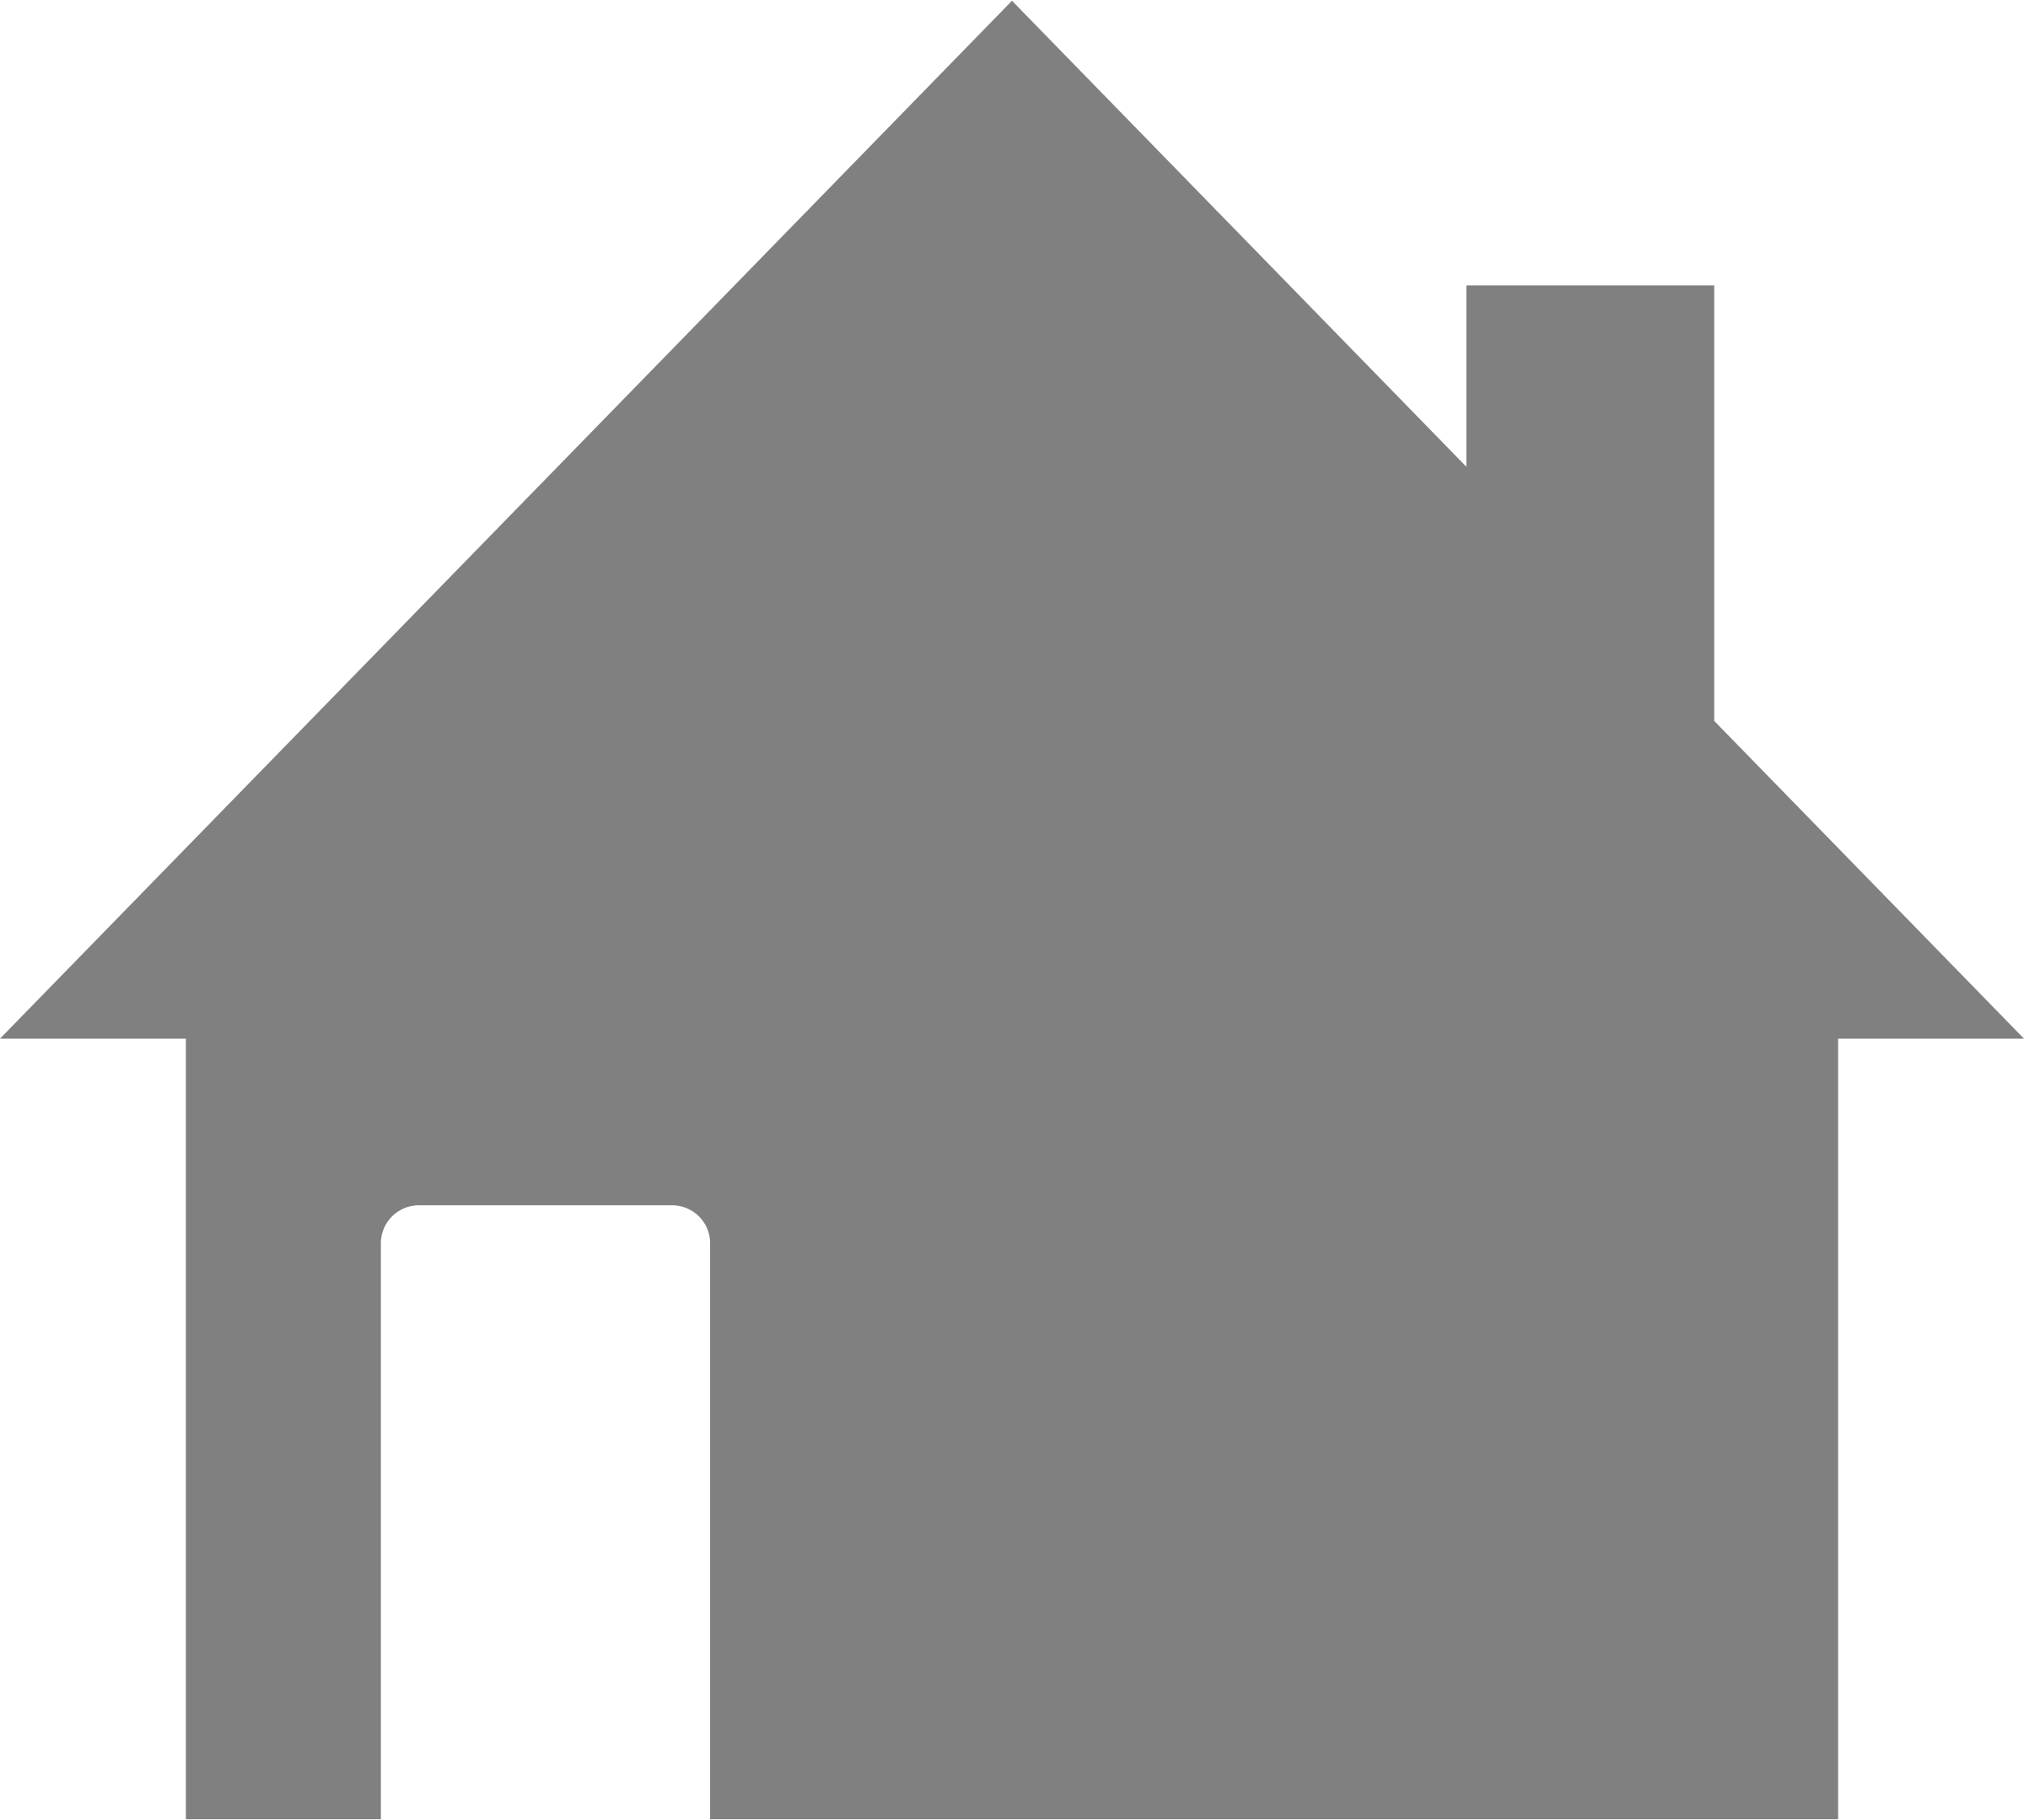 Cottage clipart black and white. House big image png